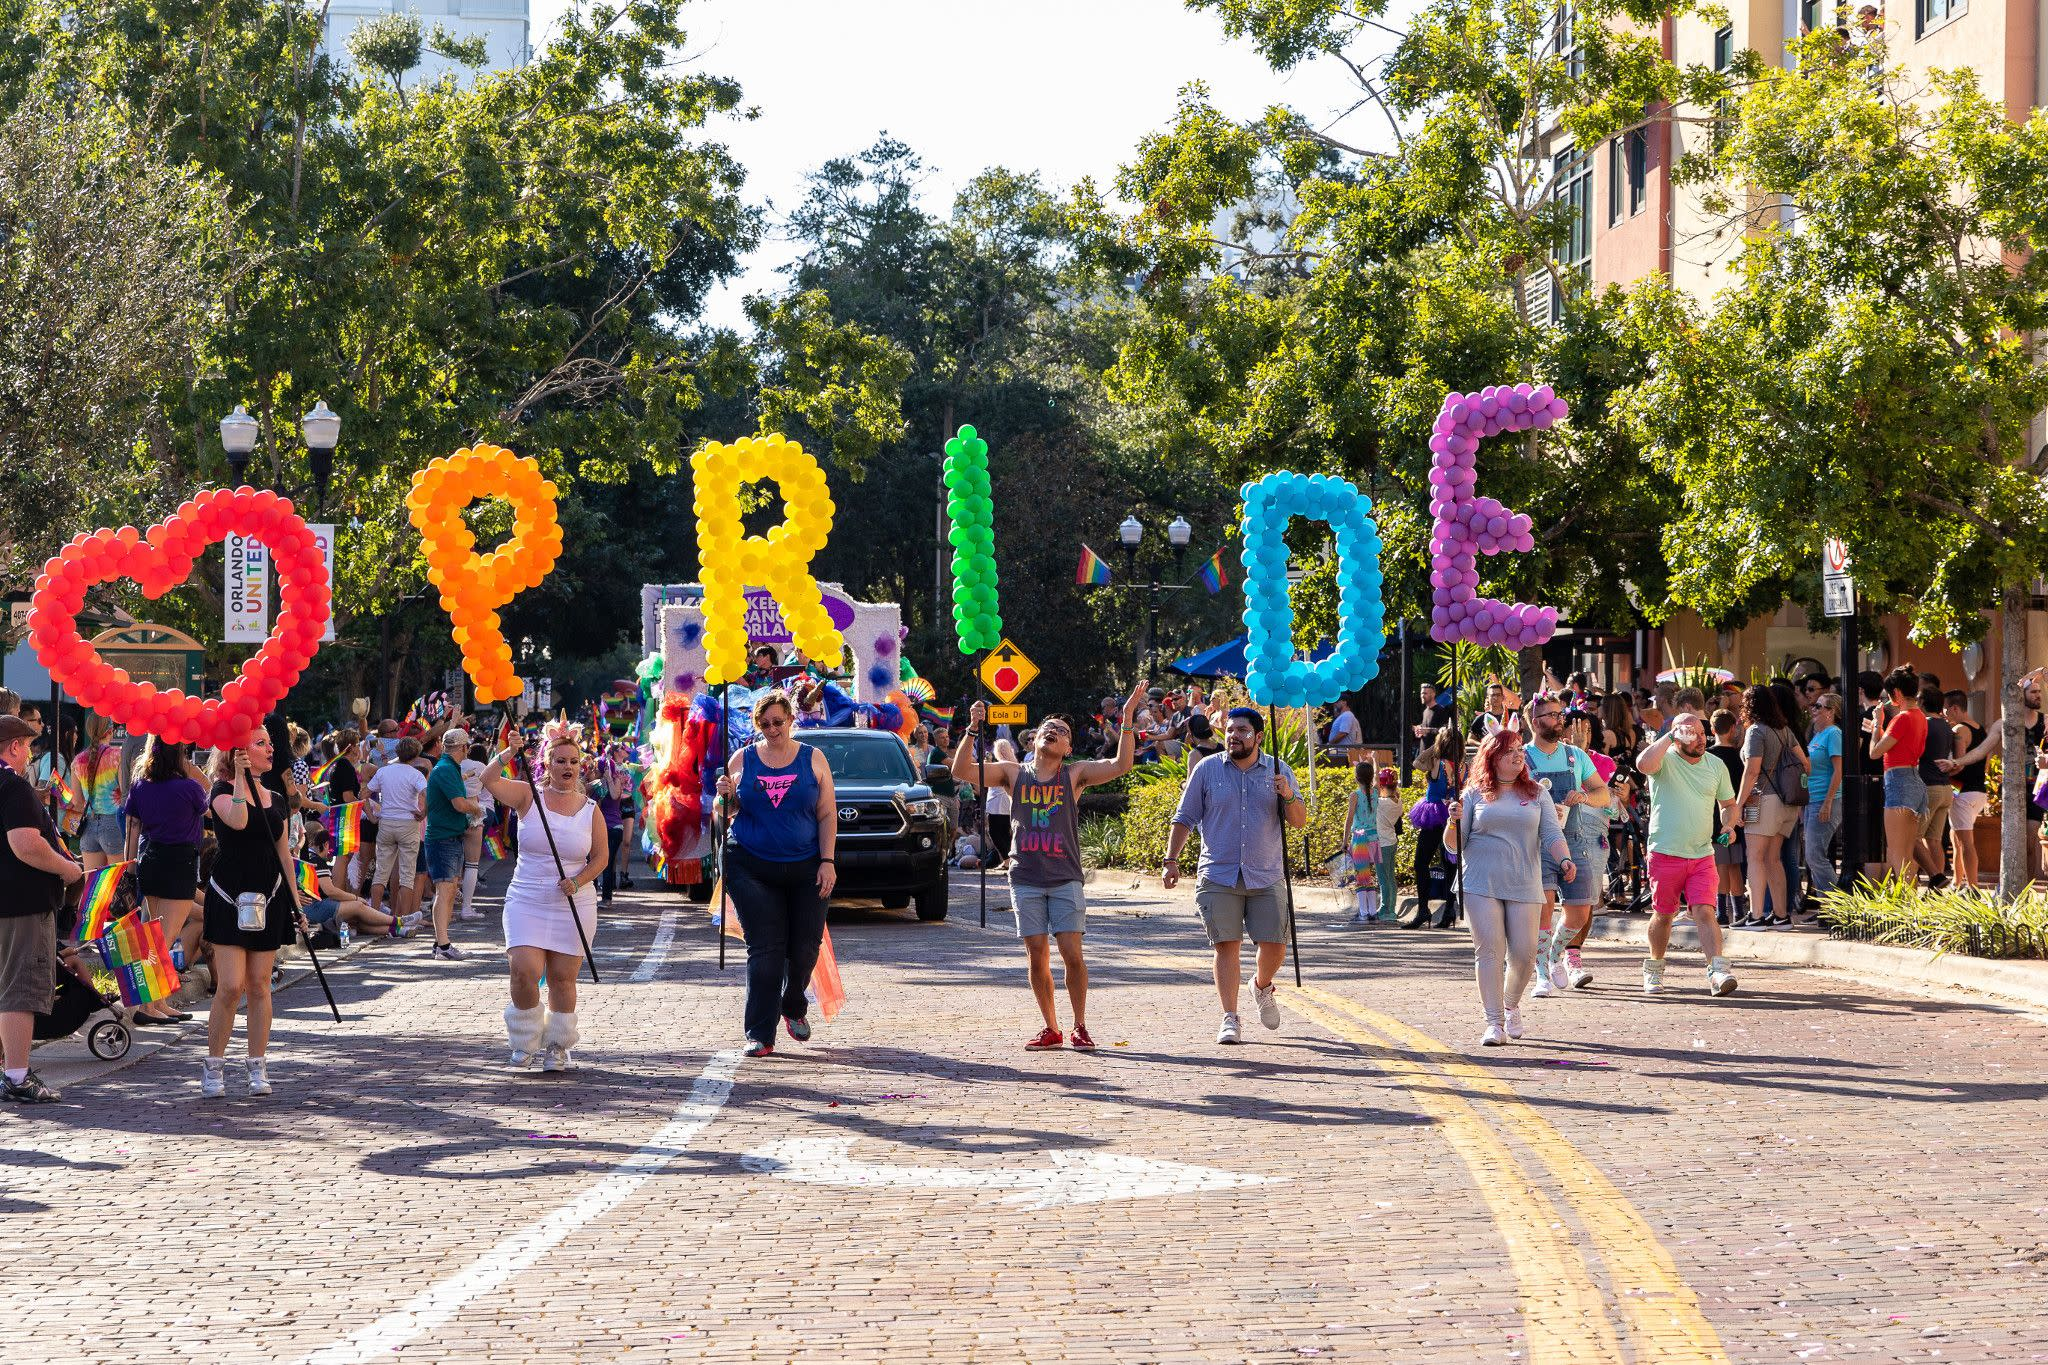 Come Out With Pride Festival Parade in Orlando